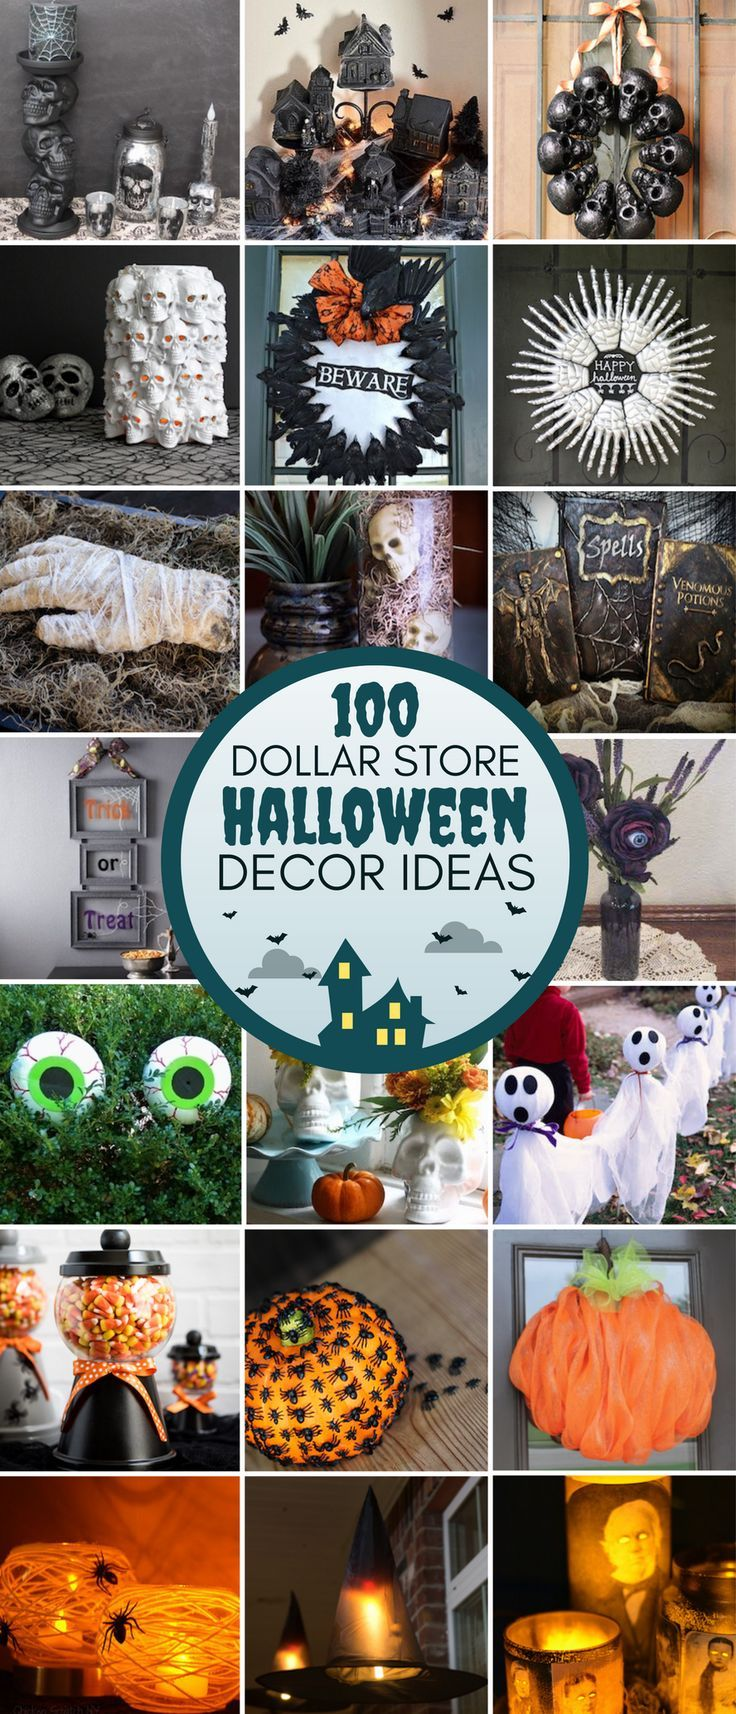 100 dollar store halloween decor diy ideas halloween ideen halloween deko und grusel. Black Bedroom Furniture Sets. Home Design Ideas